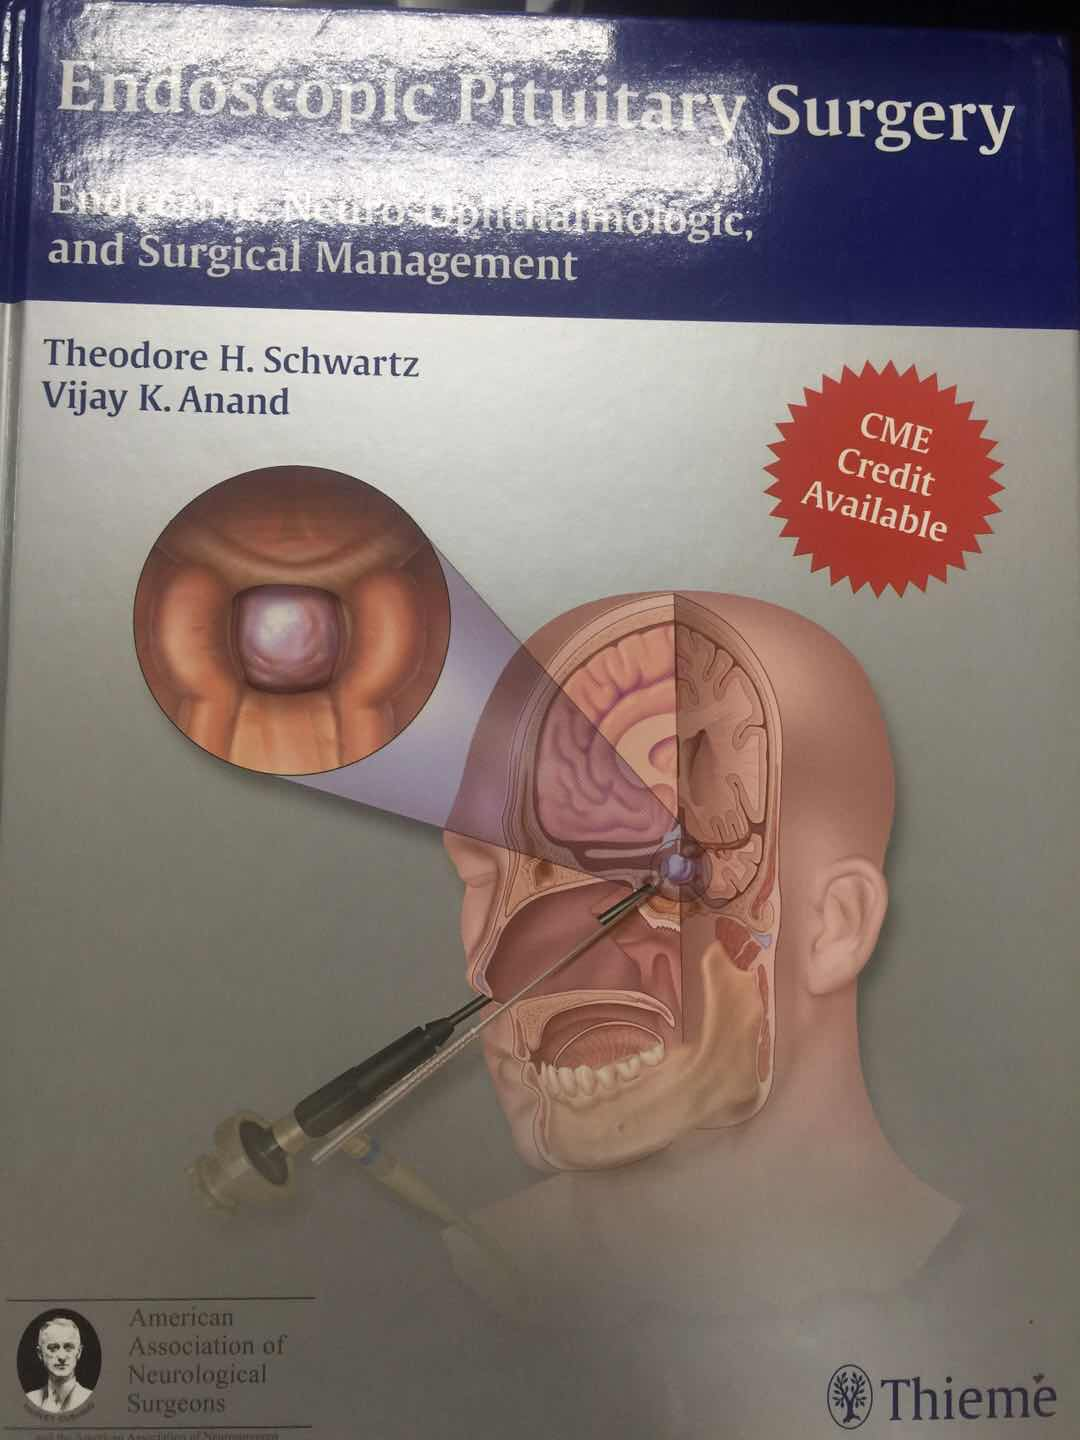 《Endoscopic Pituitary Surgery: Endocrine, Neuro-Ophthalmologic, and Surgical Management》